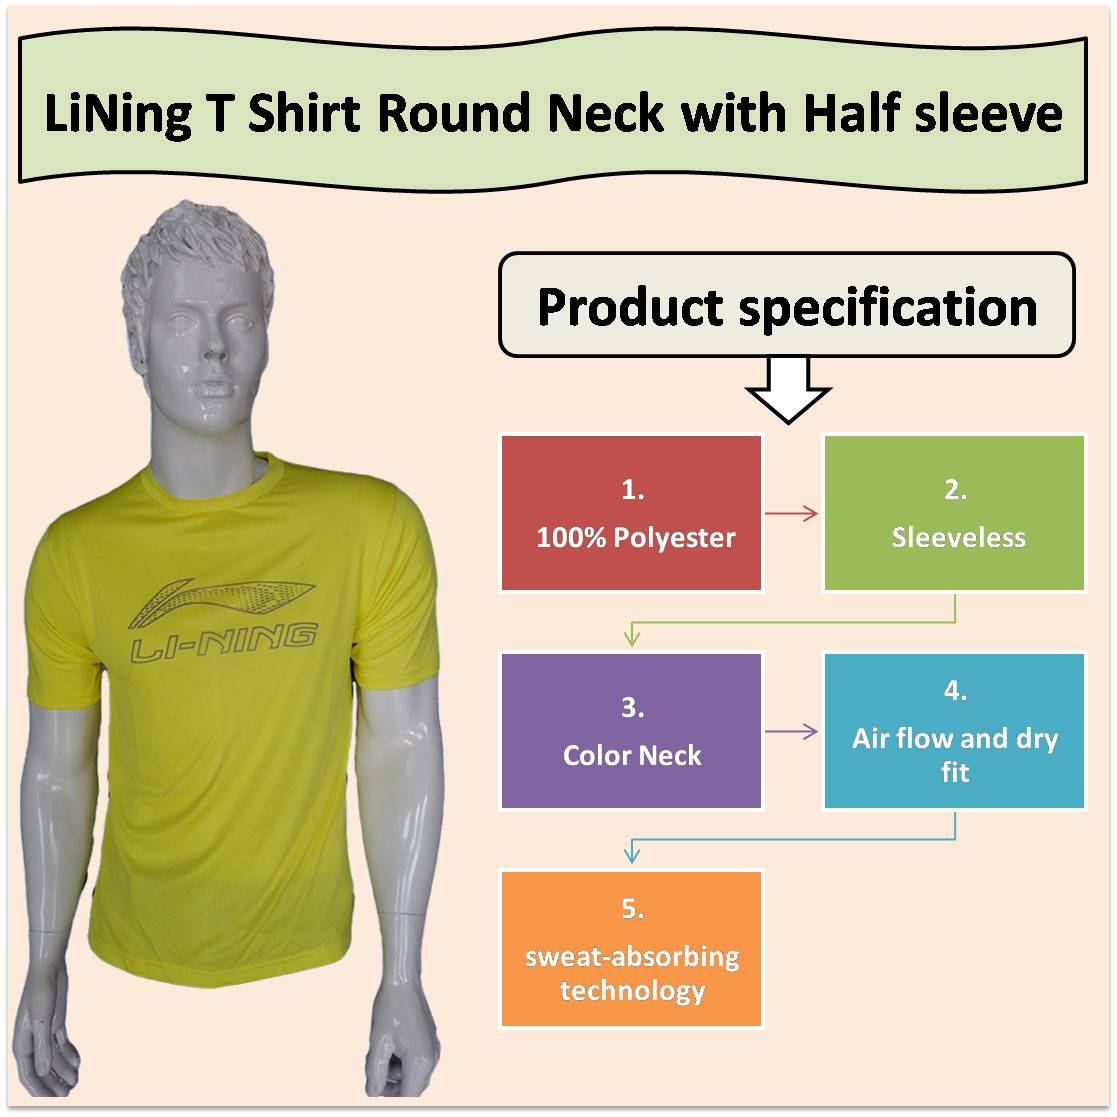 LiNing T Shirt Round Neck with Half sleeve Yellow